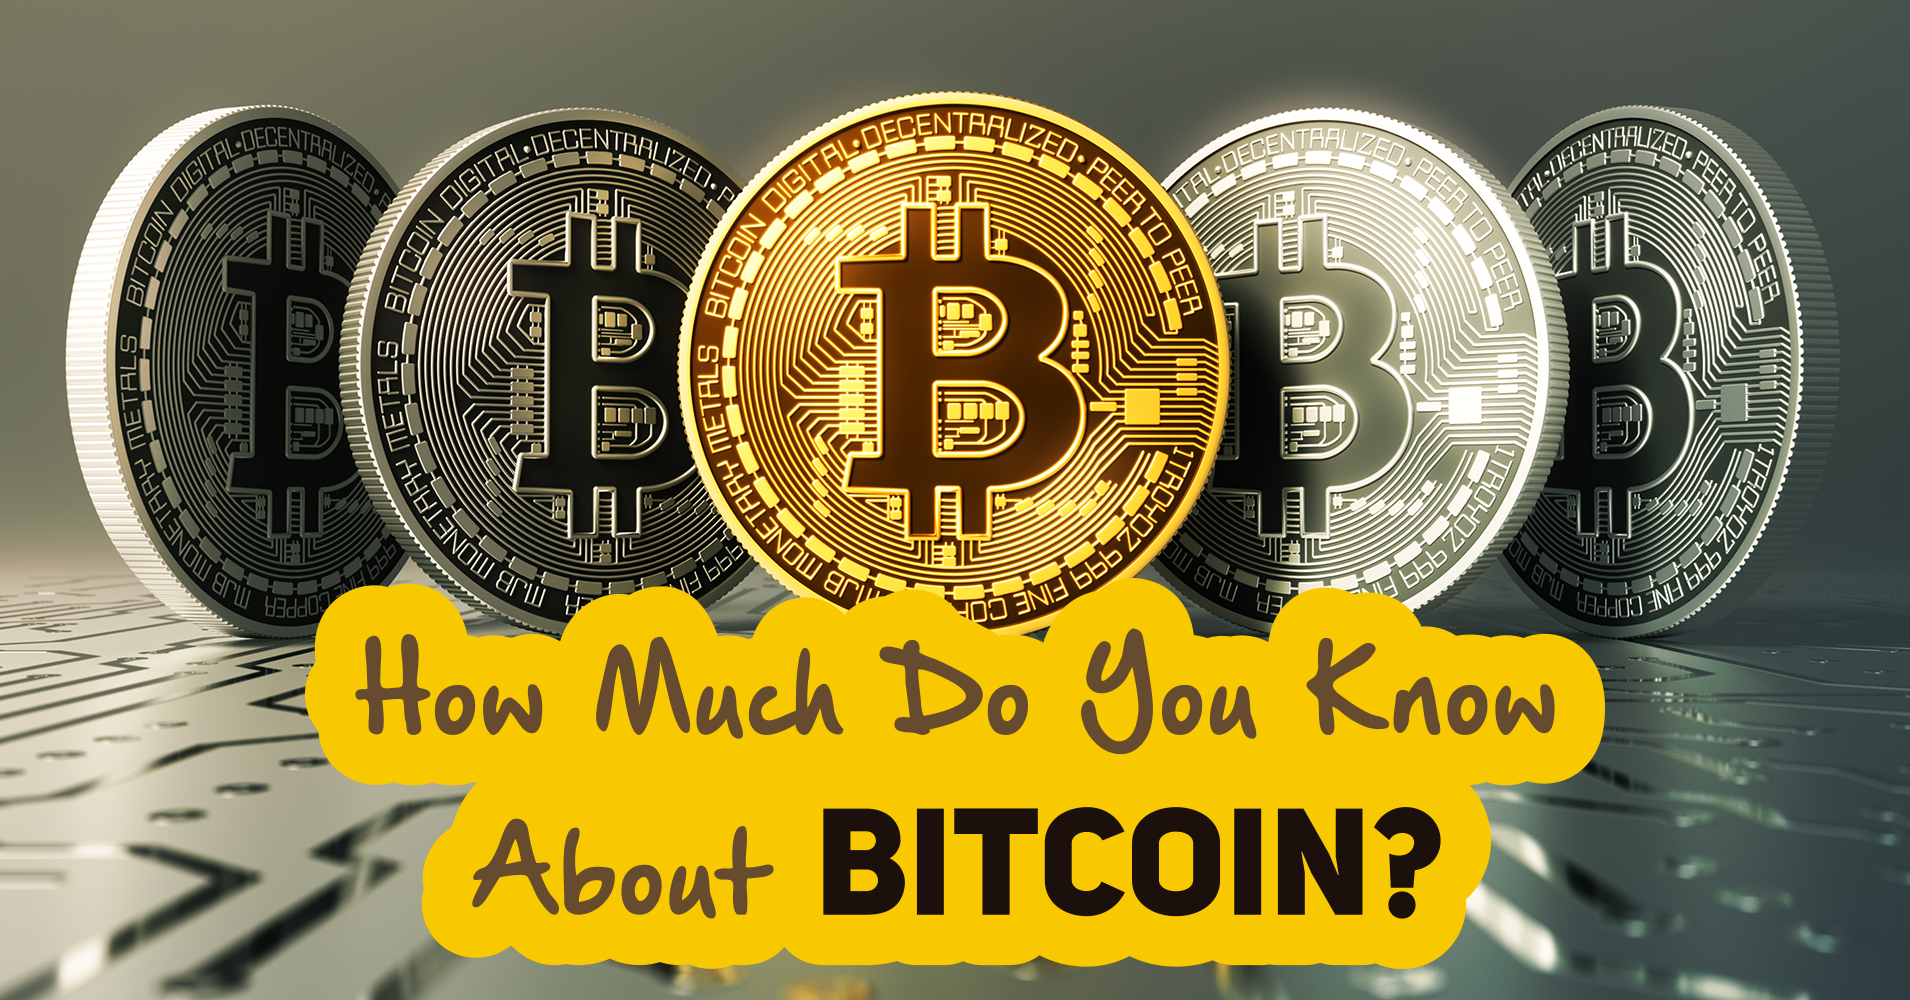 How Much Do You Know About Bitcoin? - Quiz - Quizony.com